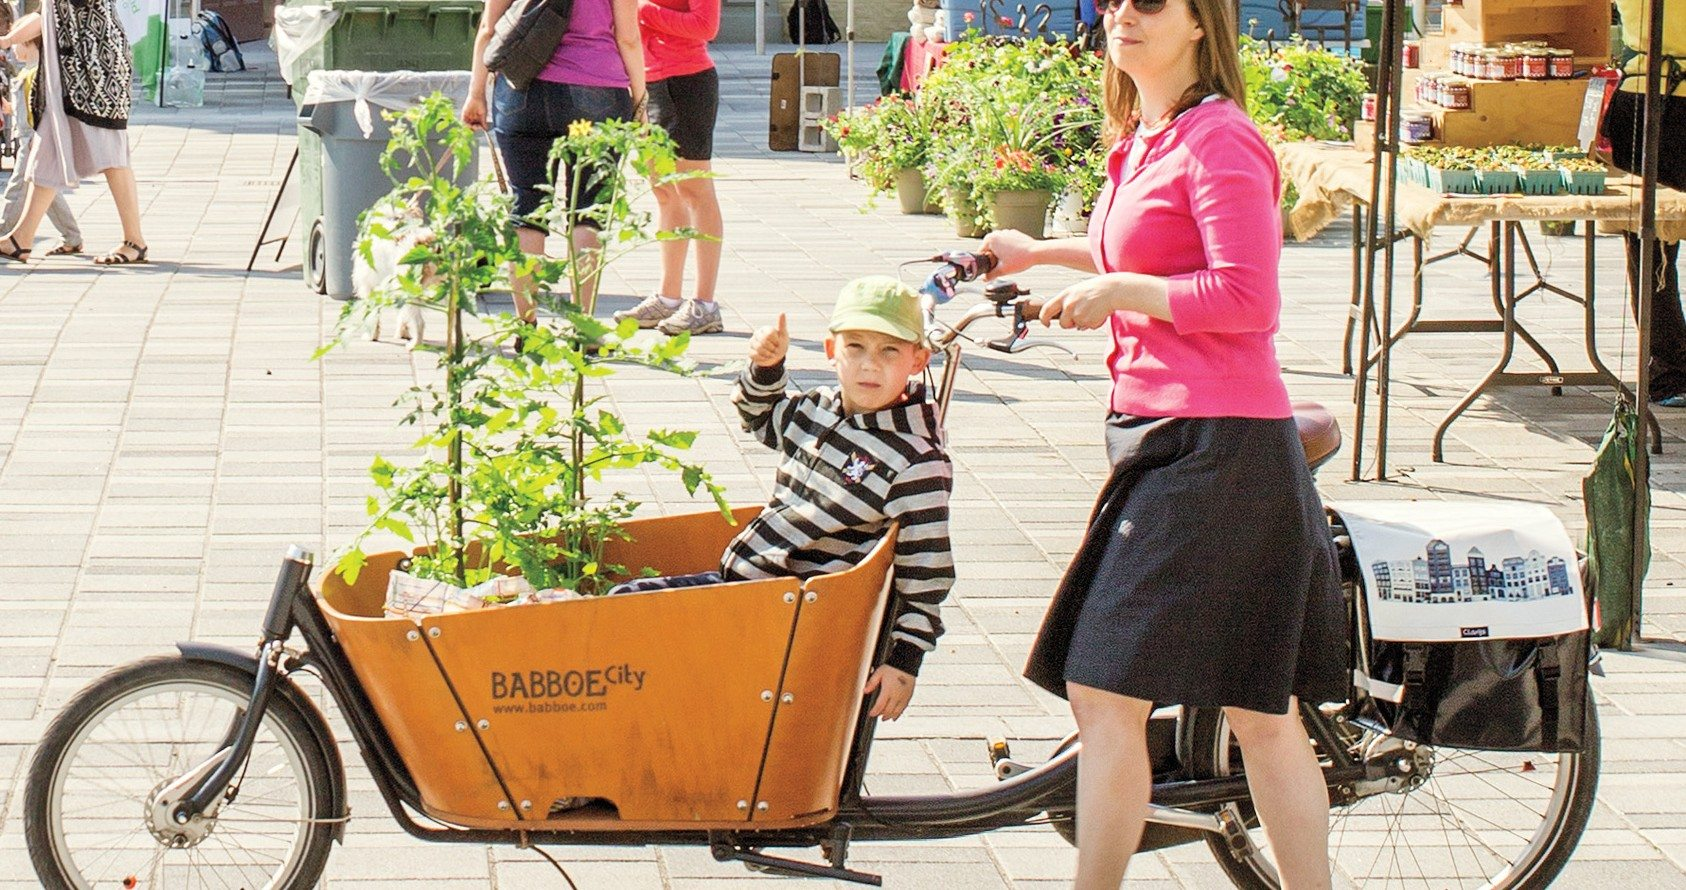 Most Wanted: The Cargo Bike